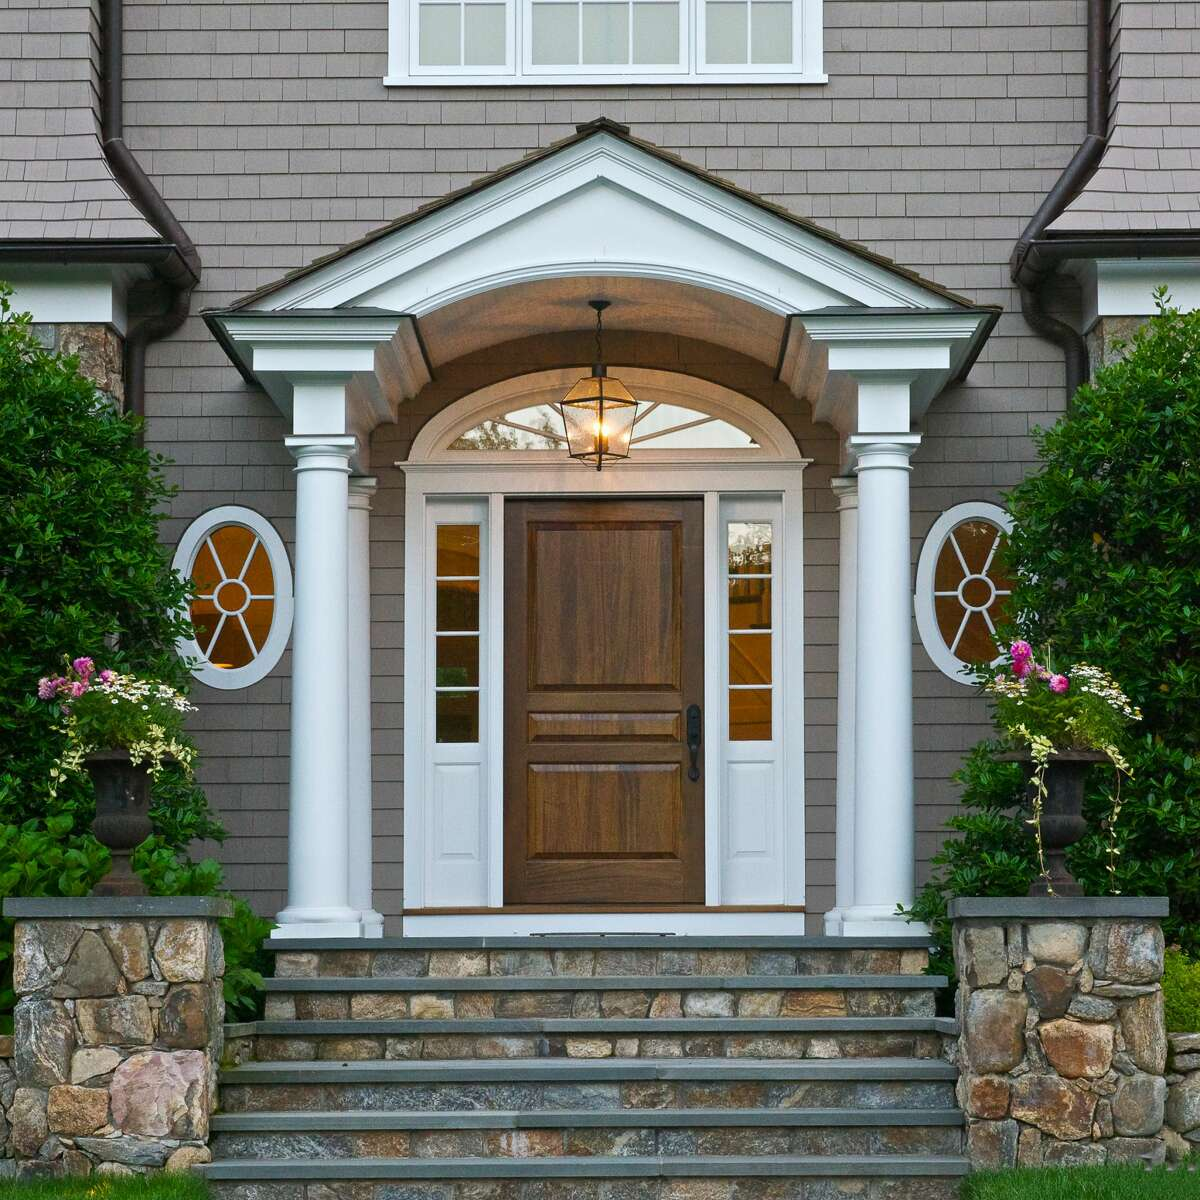 A New England, Shingle-style house in New Canaan. In the past, buyers have often come to New Canaan from the city once they have school age children. But this year, she has noticed that buyers with infants or without any children are accelerating their timetable due to the pandemic.